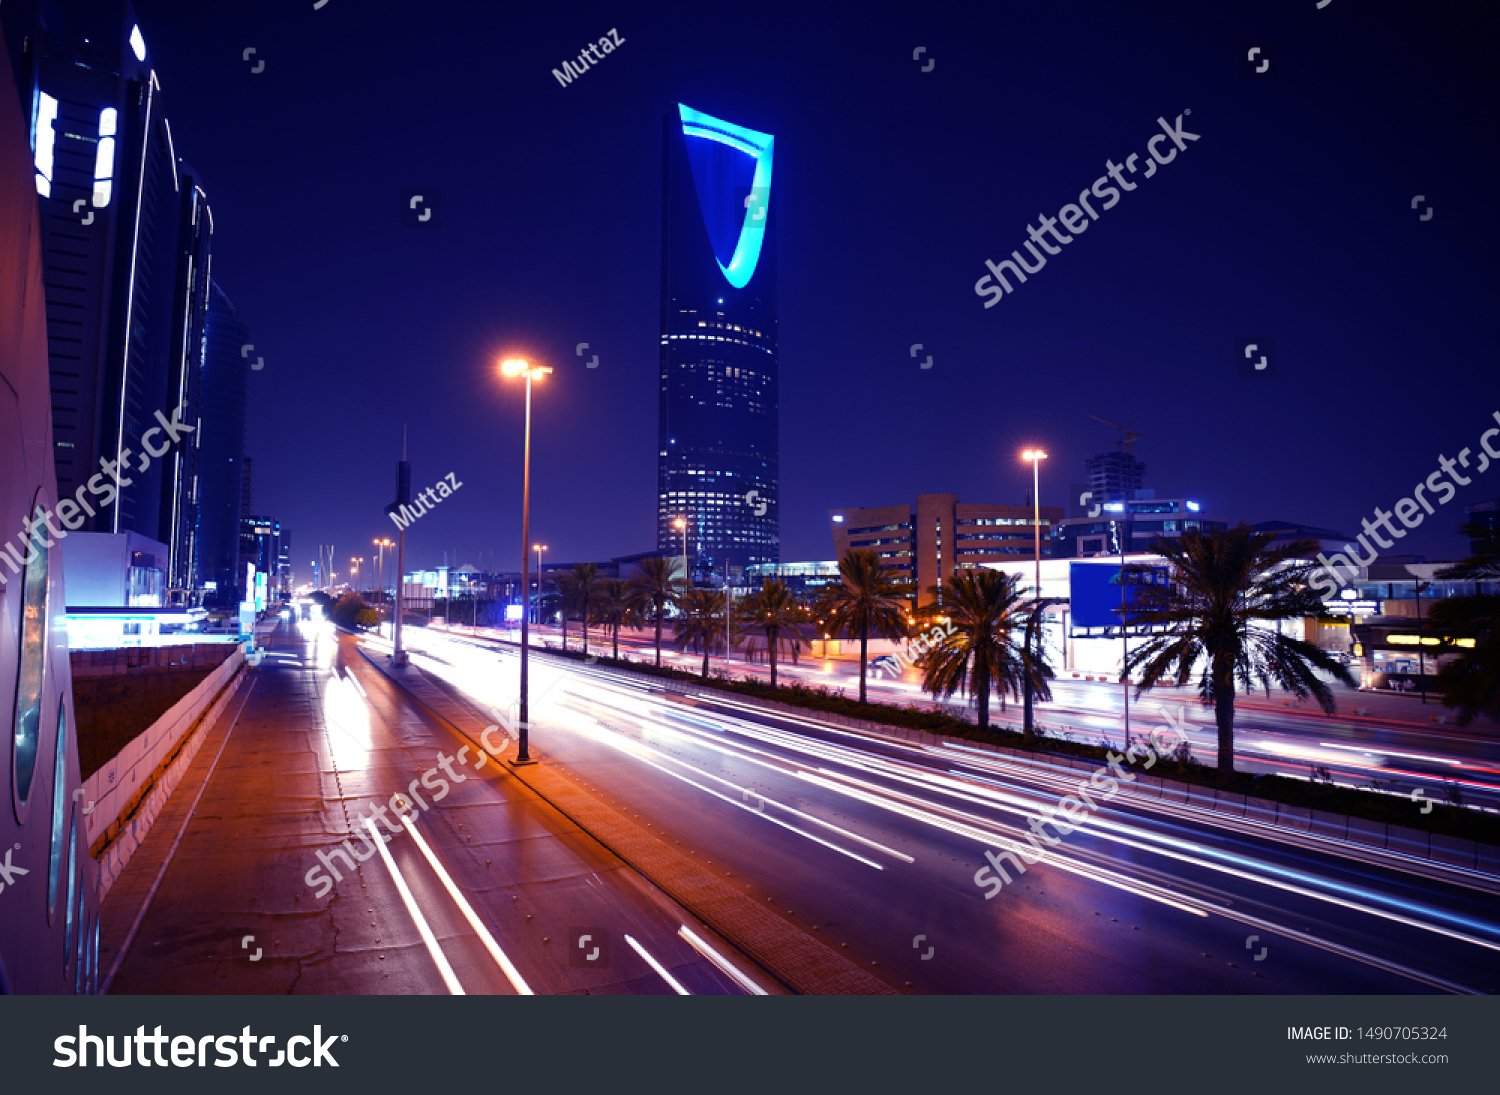 Riyadh, Saudi Arabia's capital and main financial hub-King Fahad Road at night                         #1490705324